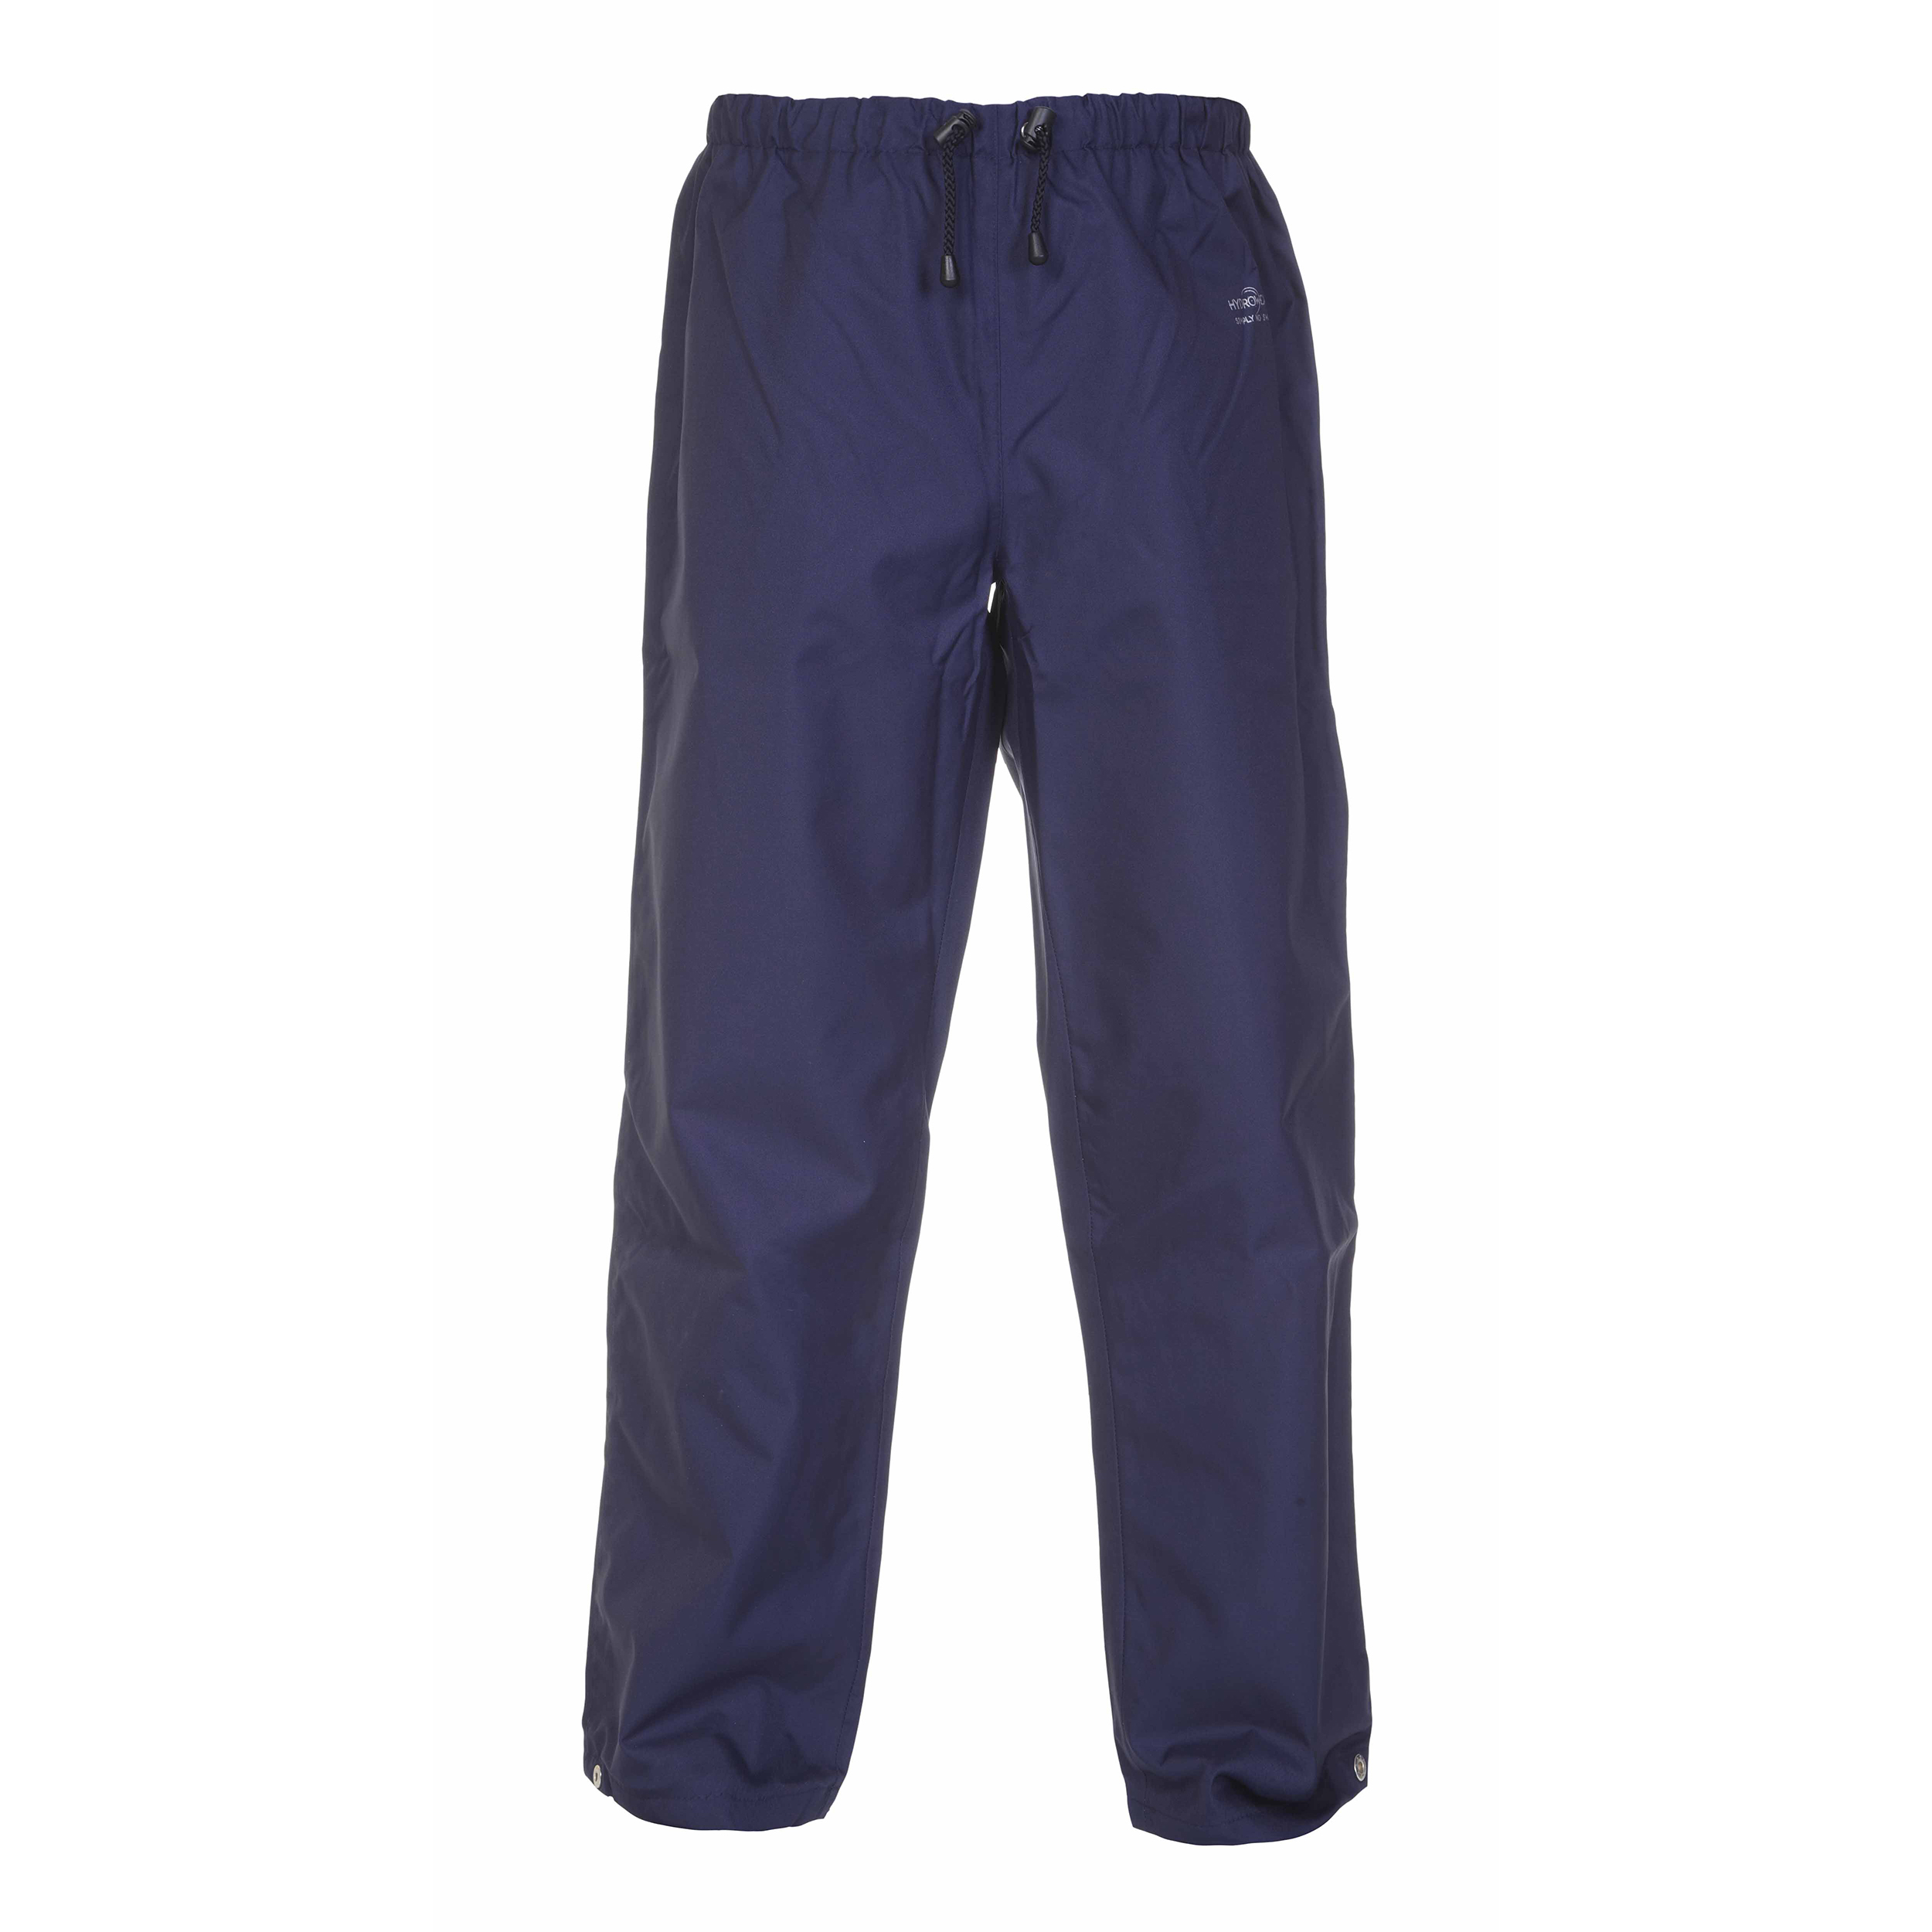 Limitless Hydowear Utrecht SNS Waterproof Trousers Small Navy Ref HYD072350NS *Up to 3 Day Leadtime*